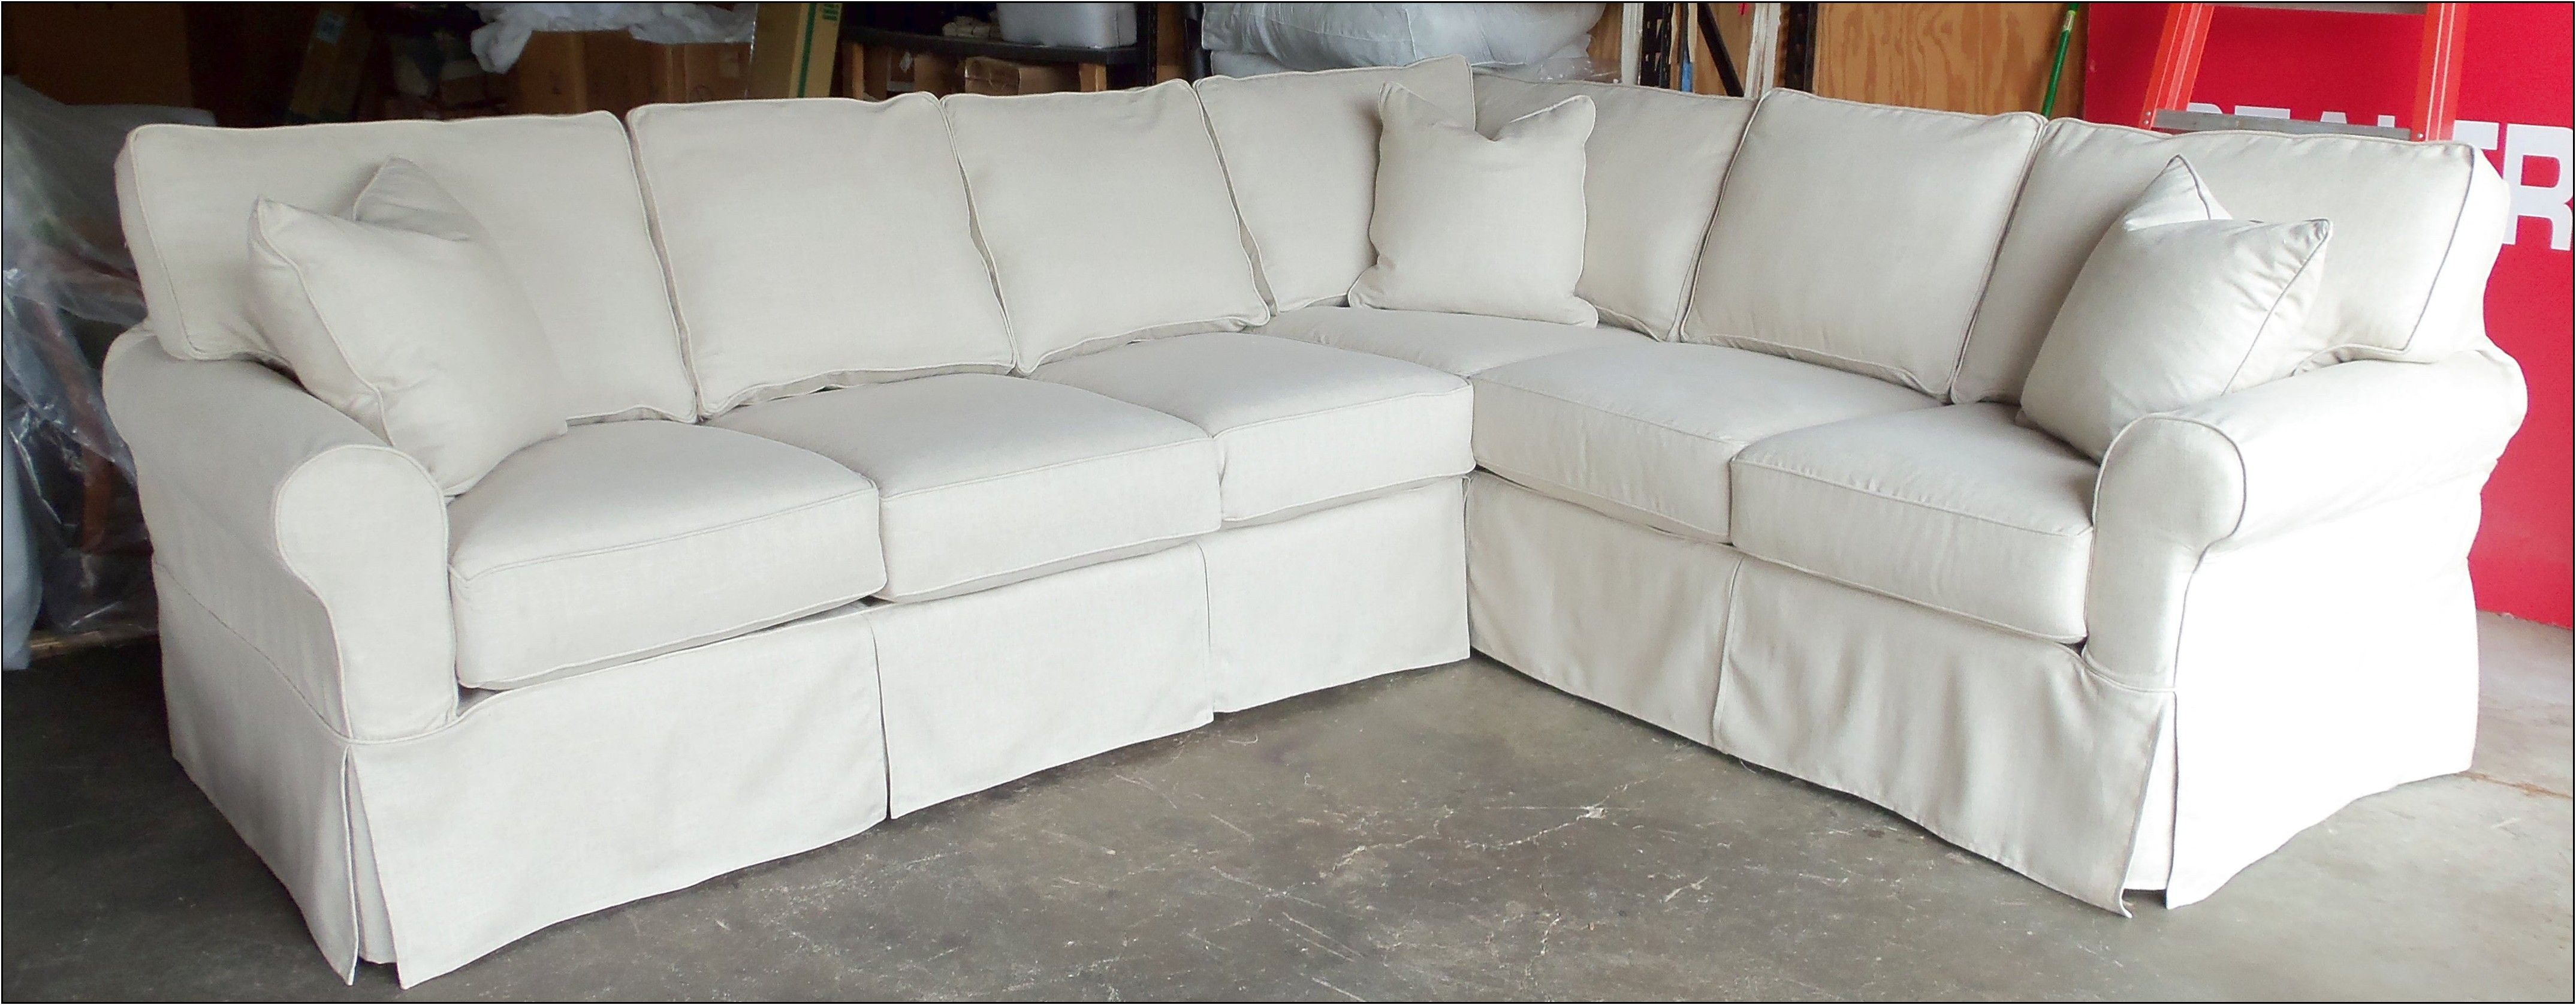 Sectional Couch Cover Sectional Sofa Slipcovers Sectional Couch